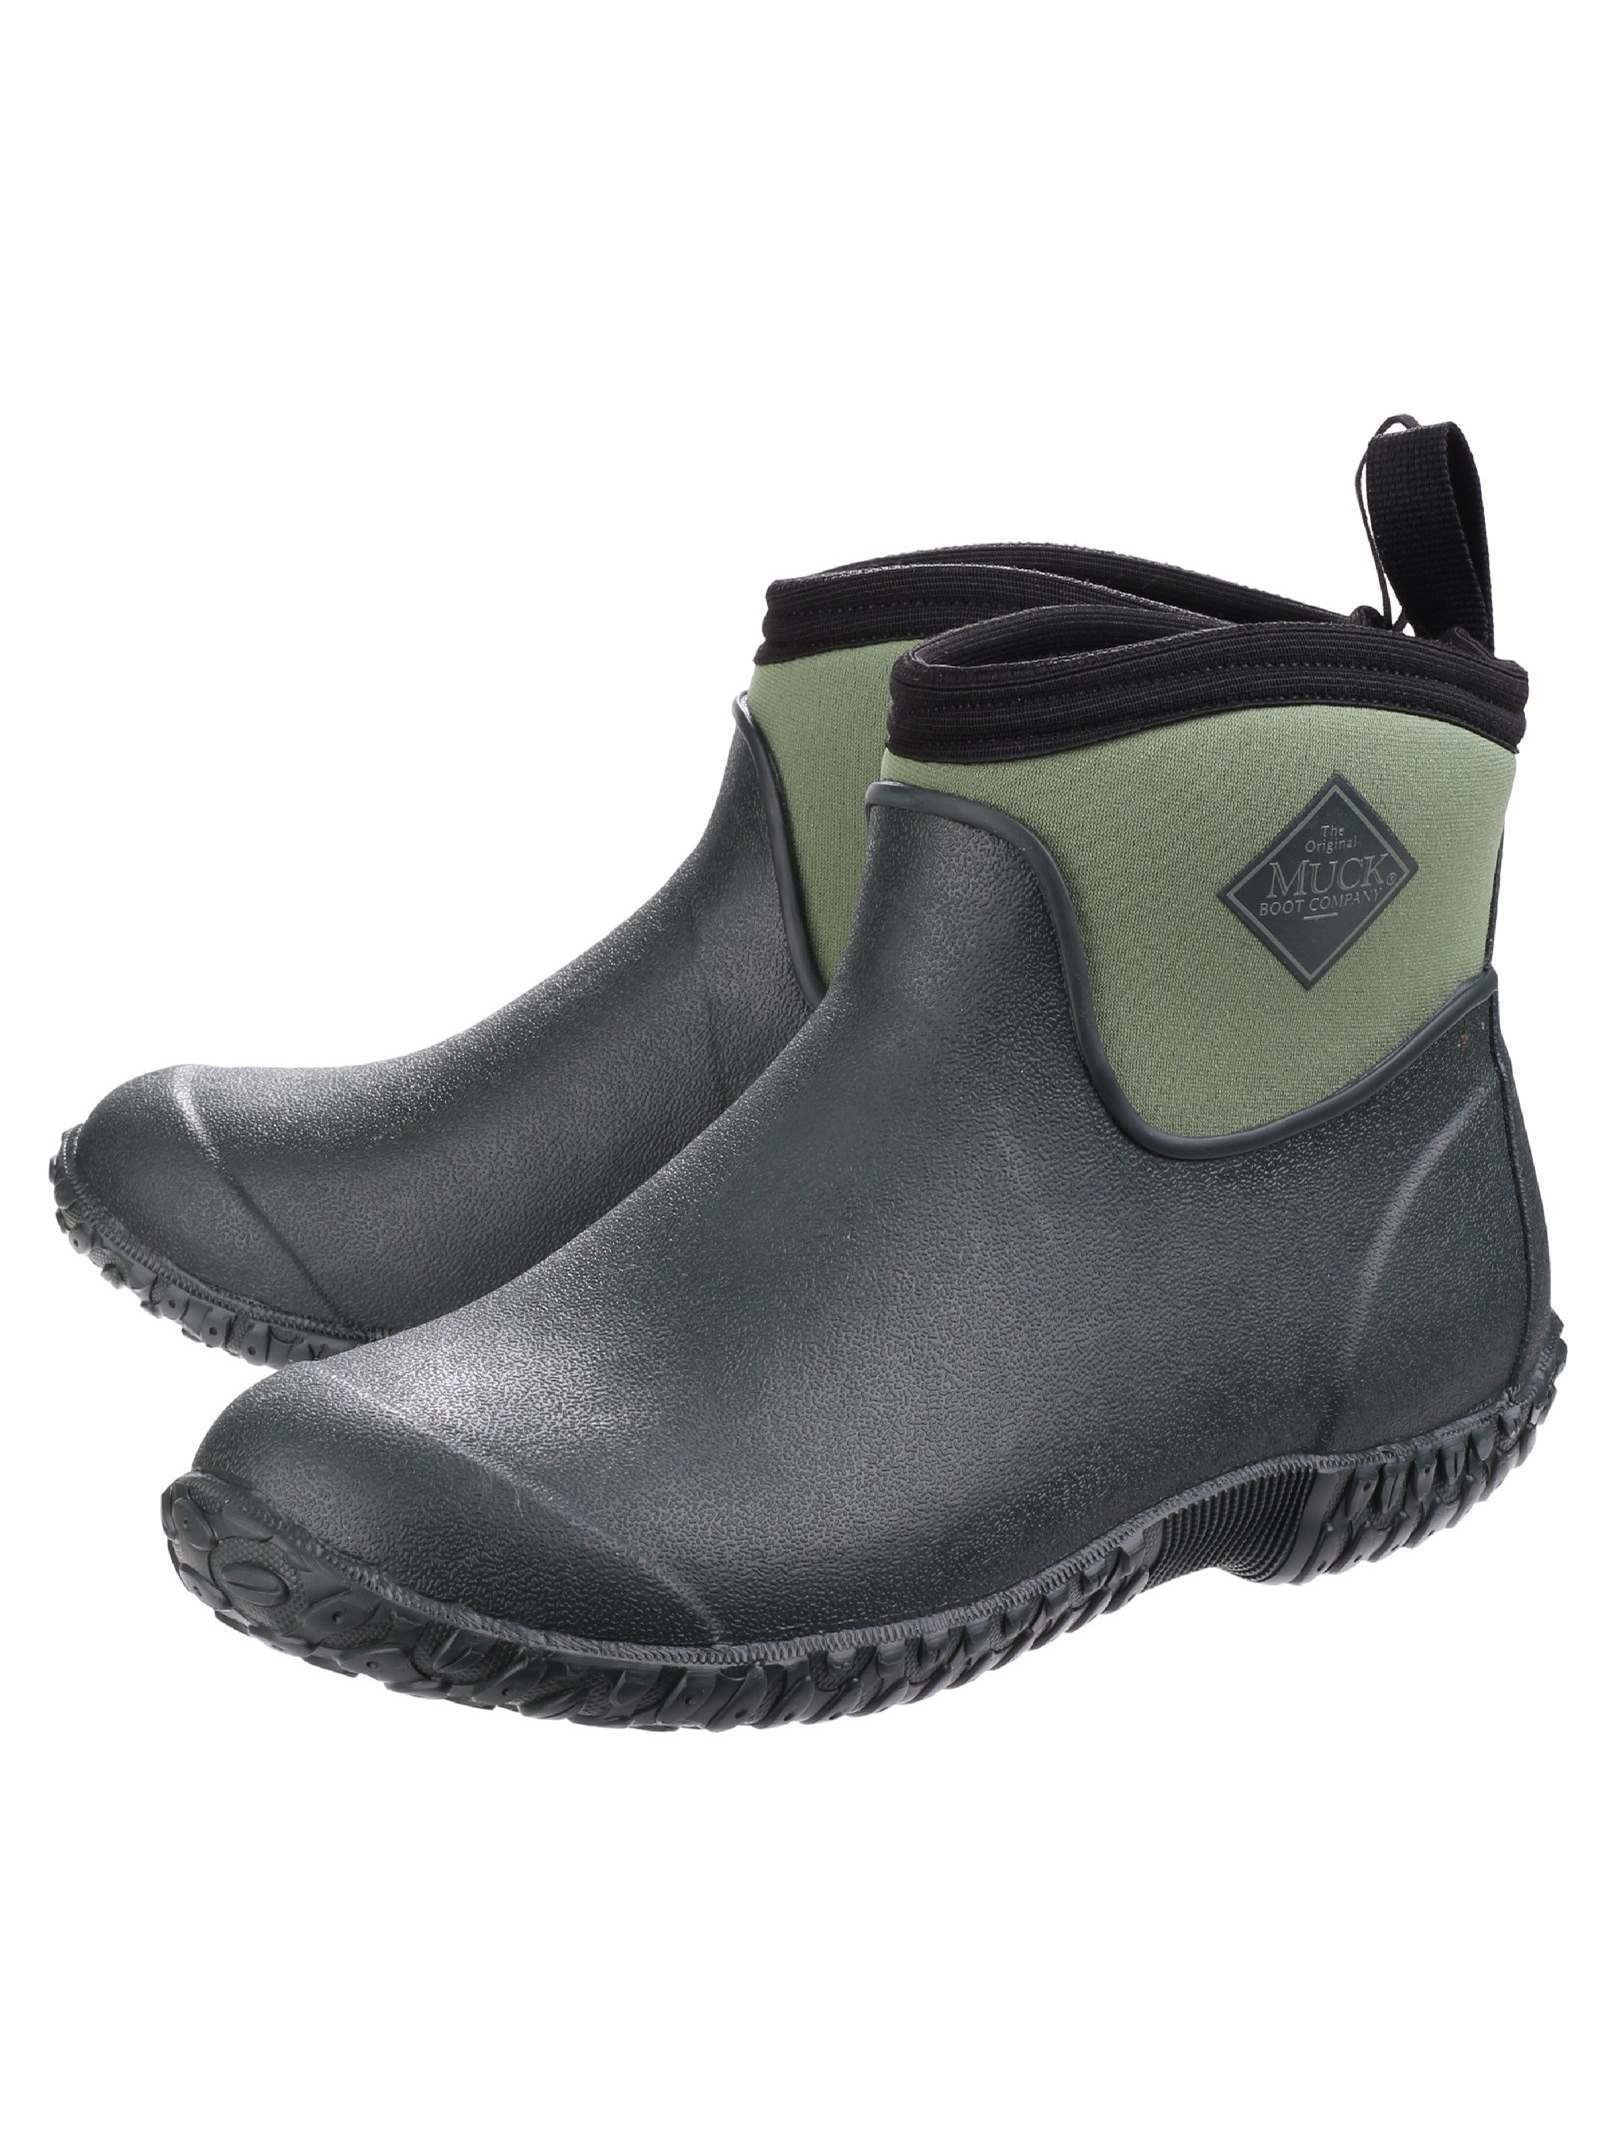 men's rhs muckster ii ankle boots 1